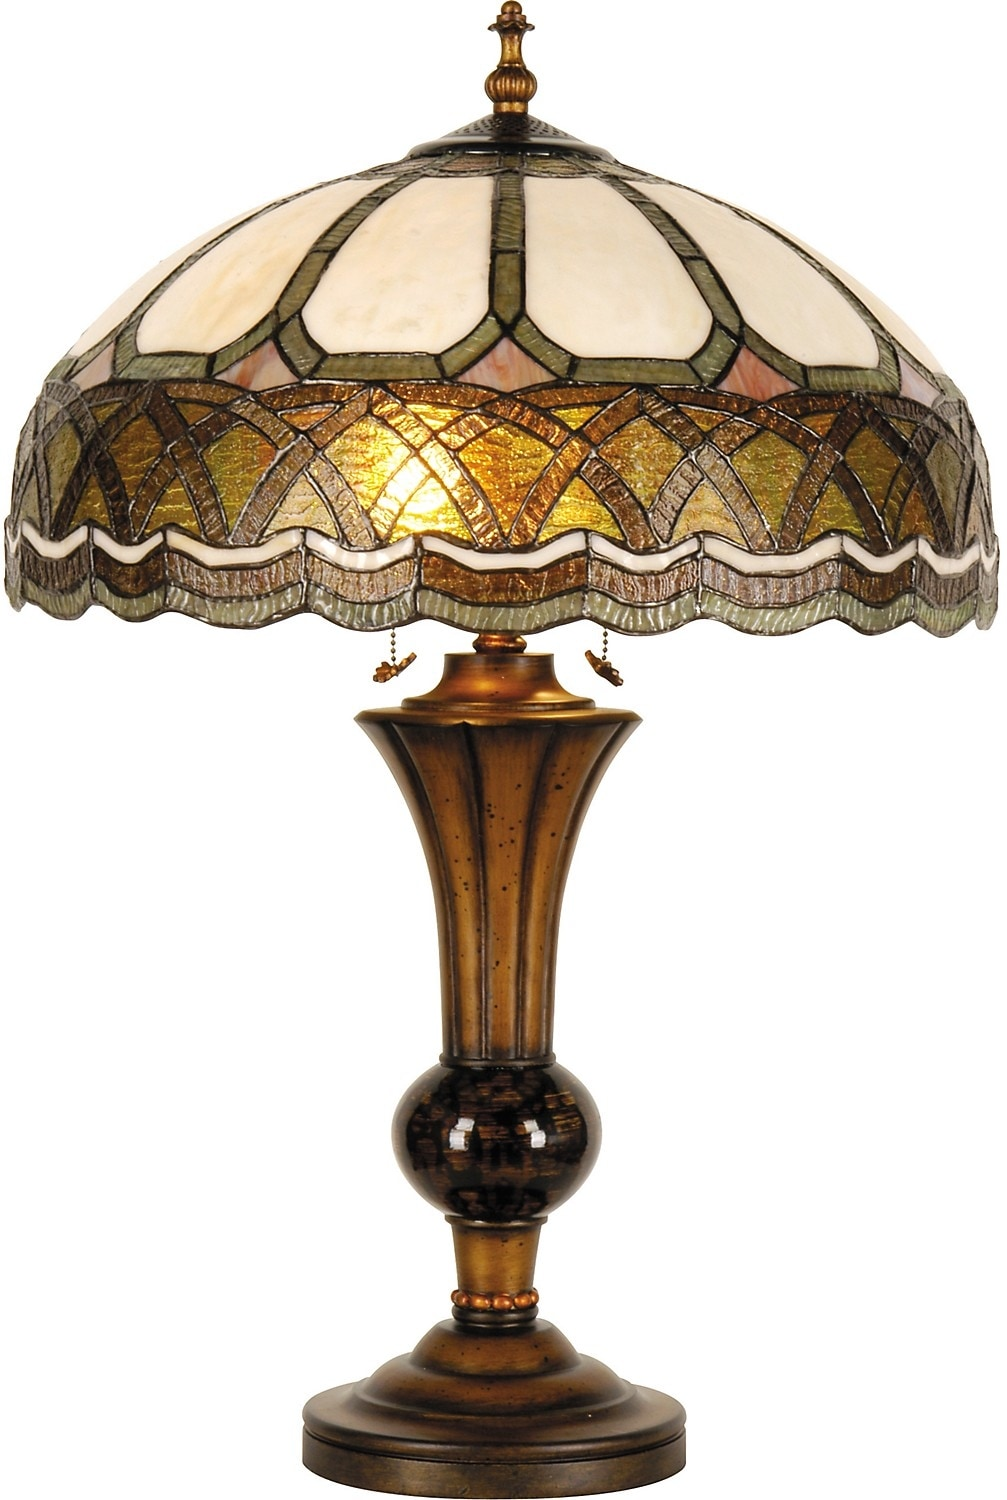 Cameron Tiffany-Style Table Lamp with Stained Glass Shade